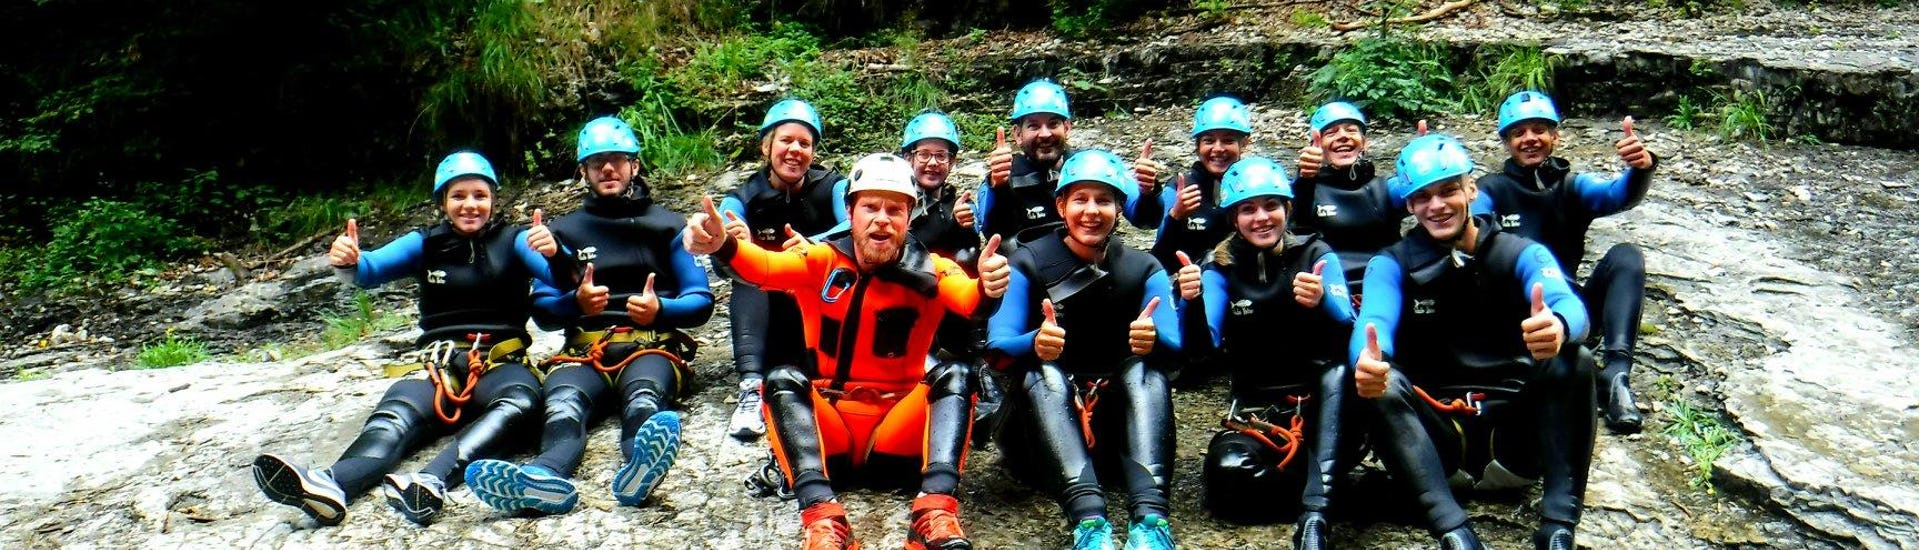 A group is getting ready for their canyoning tour in Salzburg with FROST Rafting & Canyoning Tours.